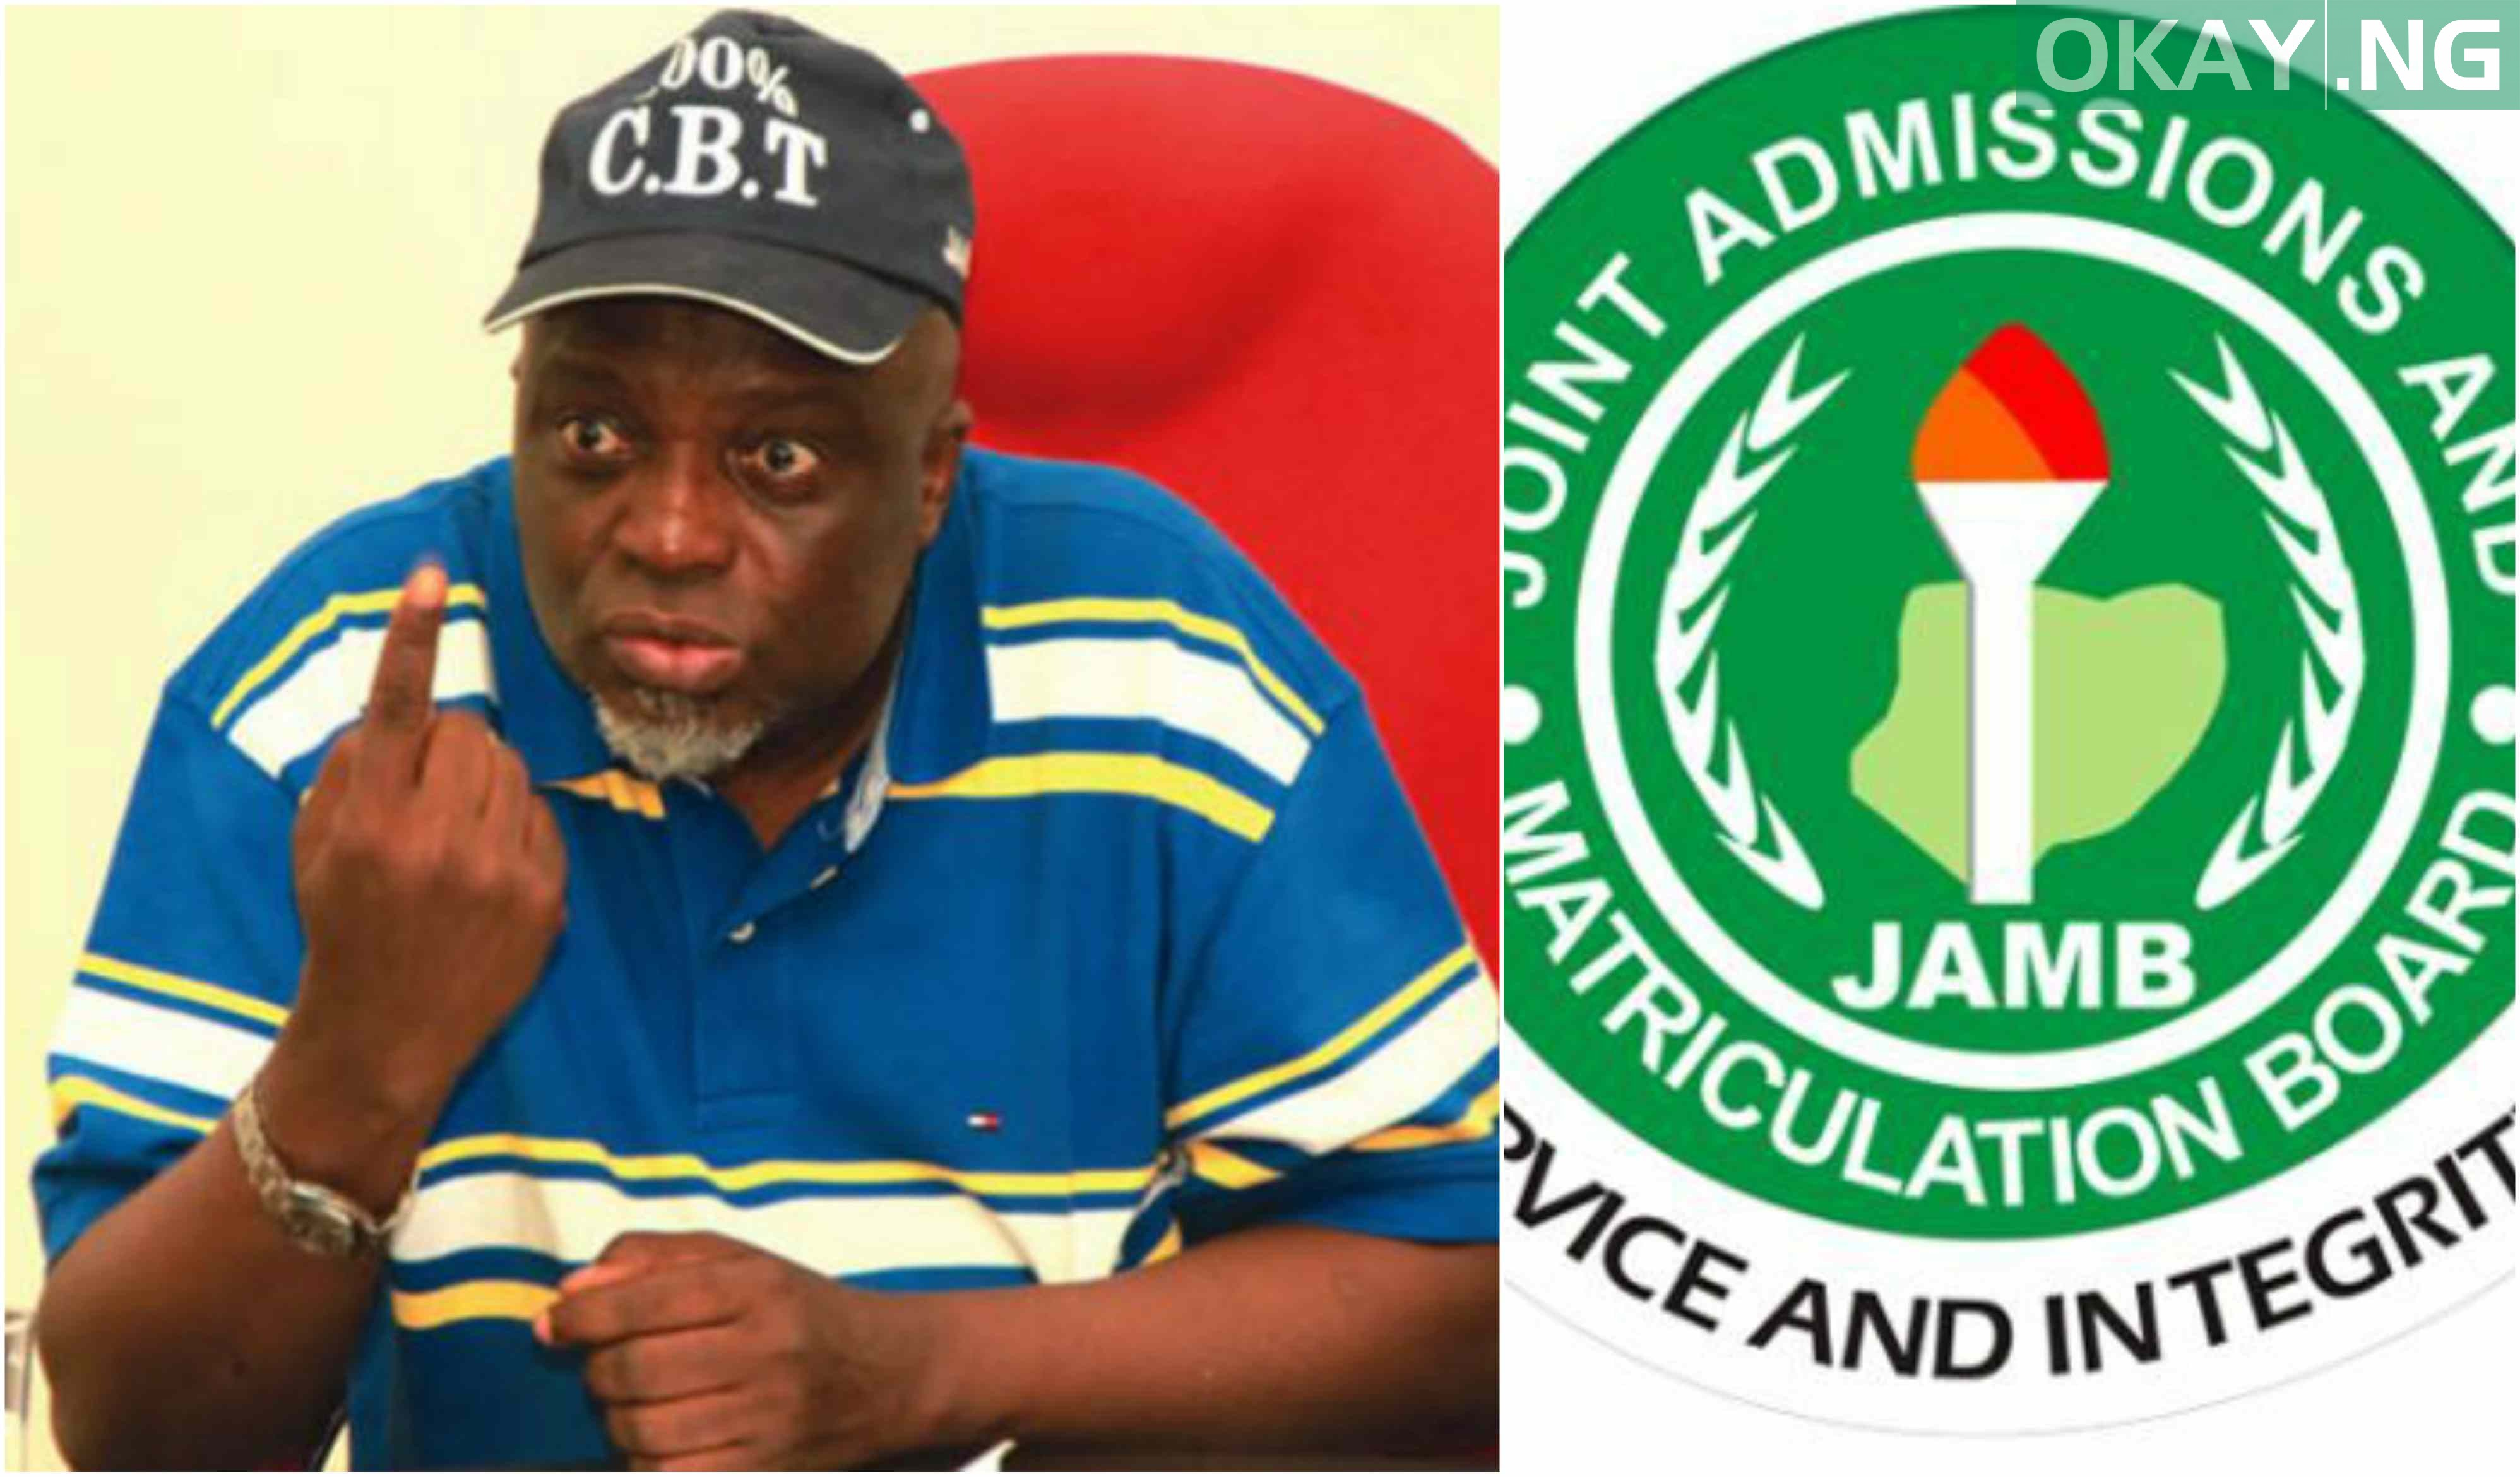 JAMB Prof Okay ng - JAMB finally fixes date to release 2019 UTME results